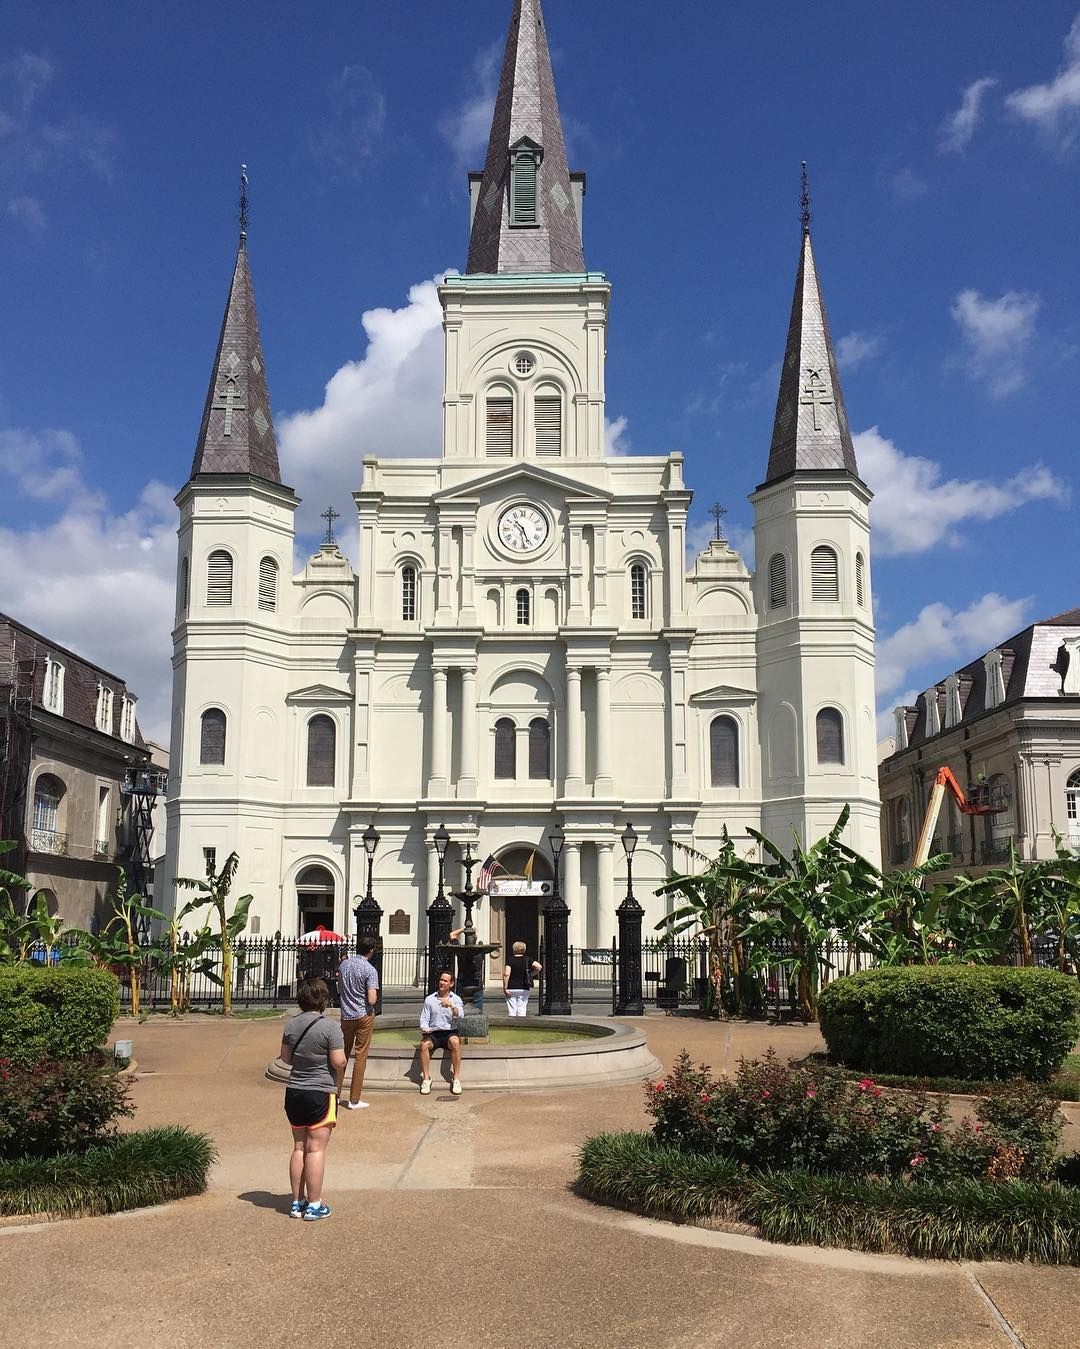 St Louis Cathedral #neworleans #louisiana #frenchquarter #nola #uktousa #travel #live #life #memories #holidays #fun #times #meandmyboy #love #history #culture by pink_butterfly